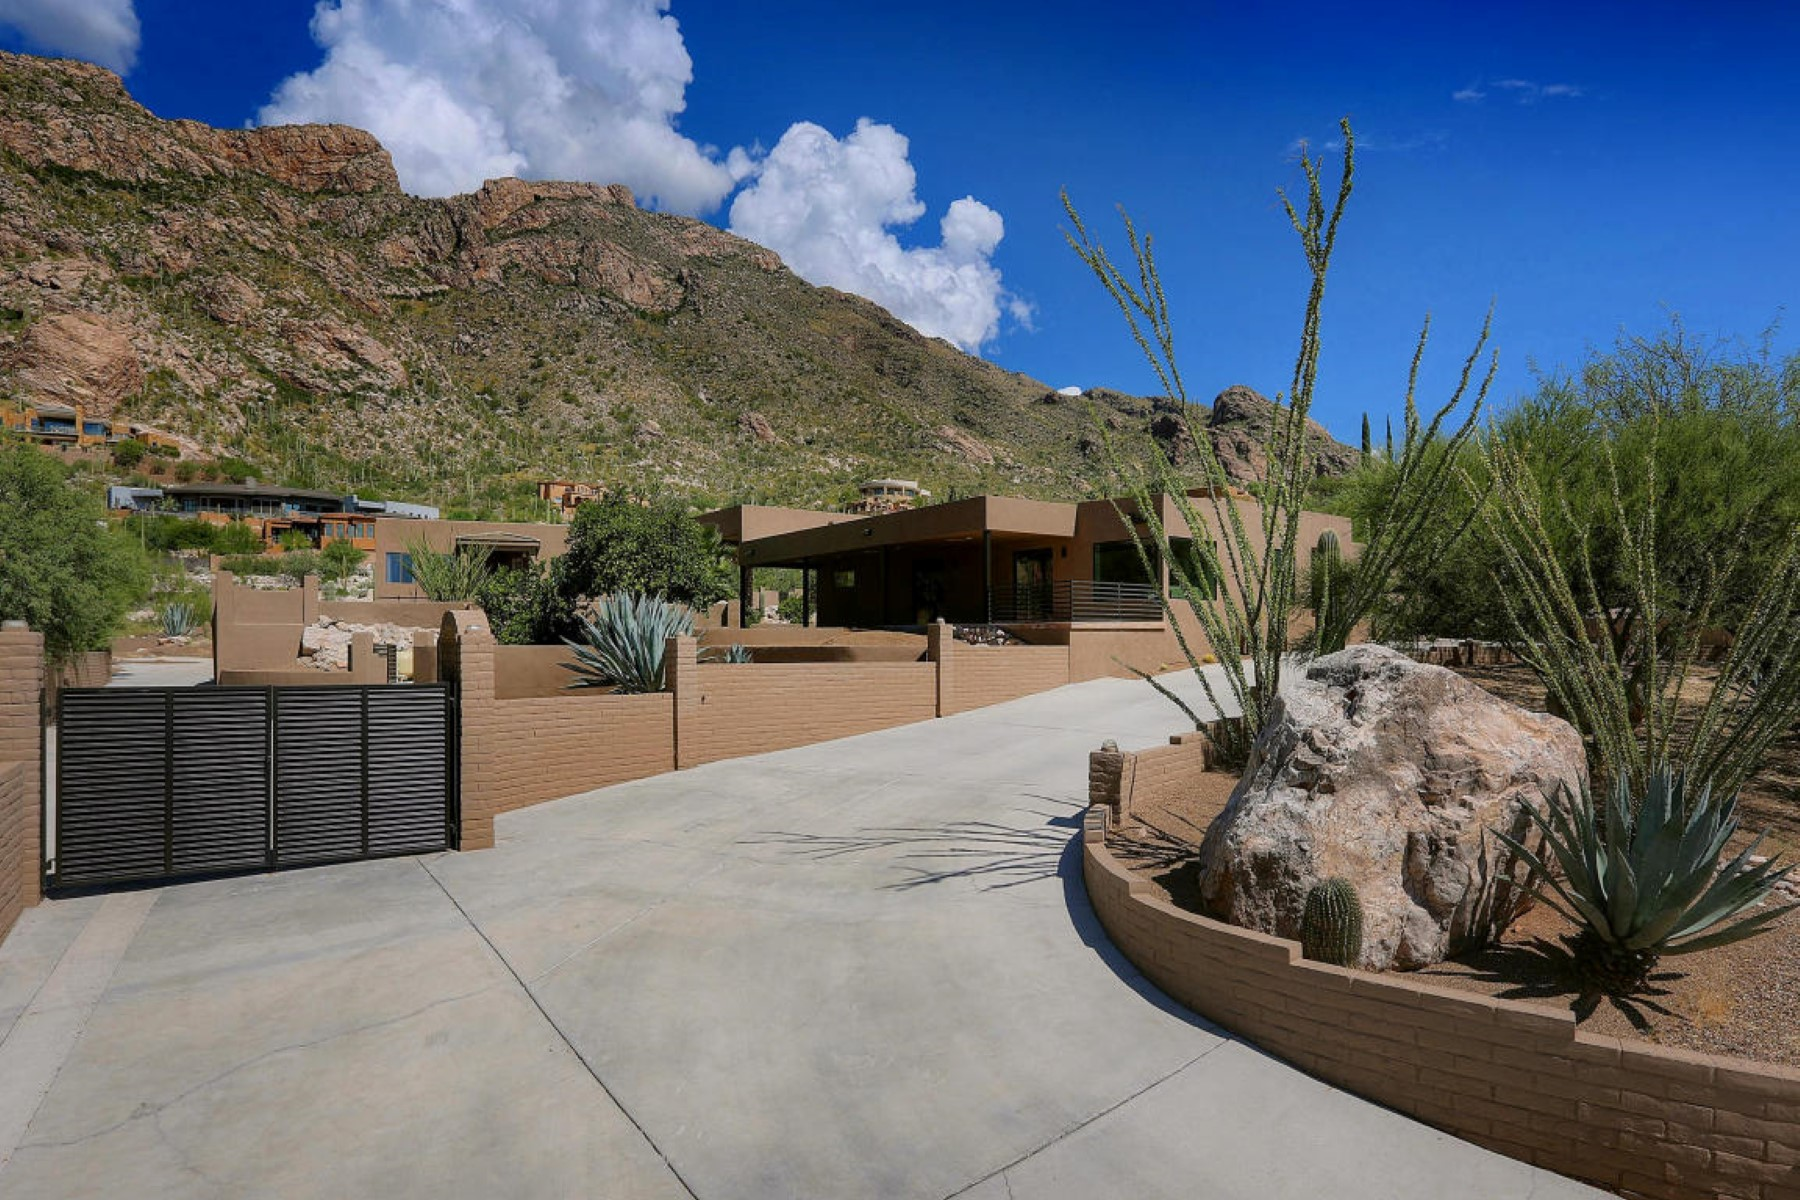 Single Family Home for Sale at Completely remodeled contemporary home 4547 E Coronado Drive Tucson, Arizona, 85718 United States